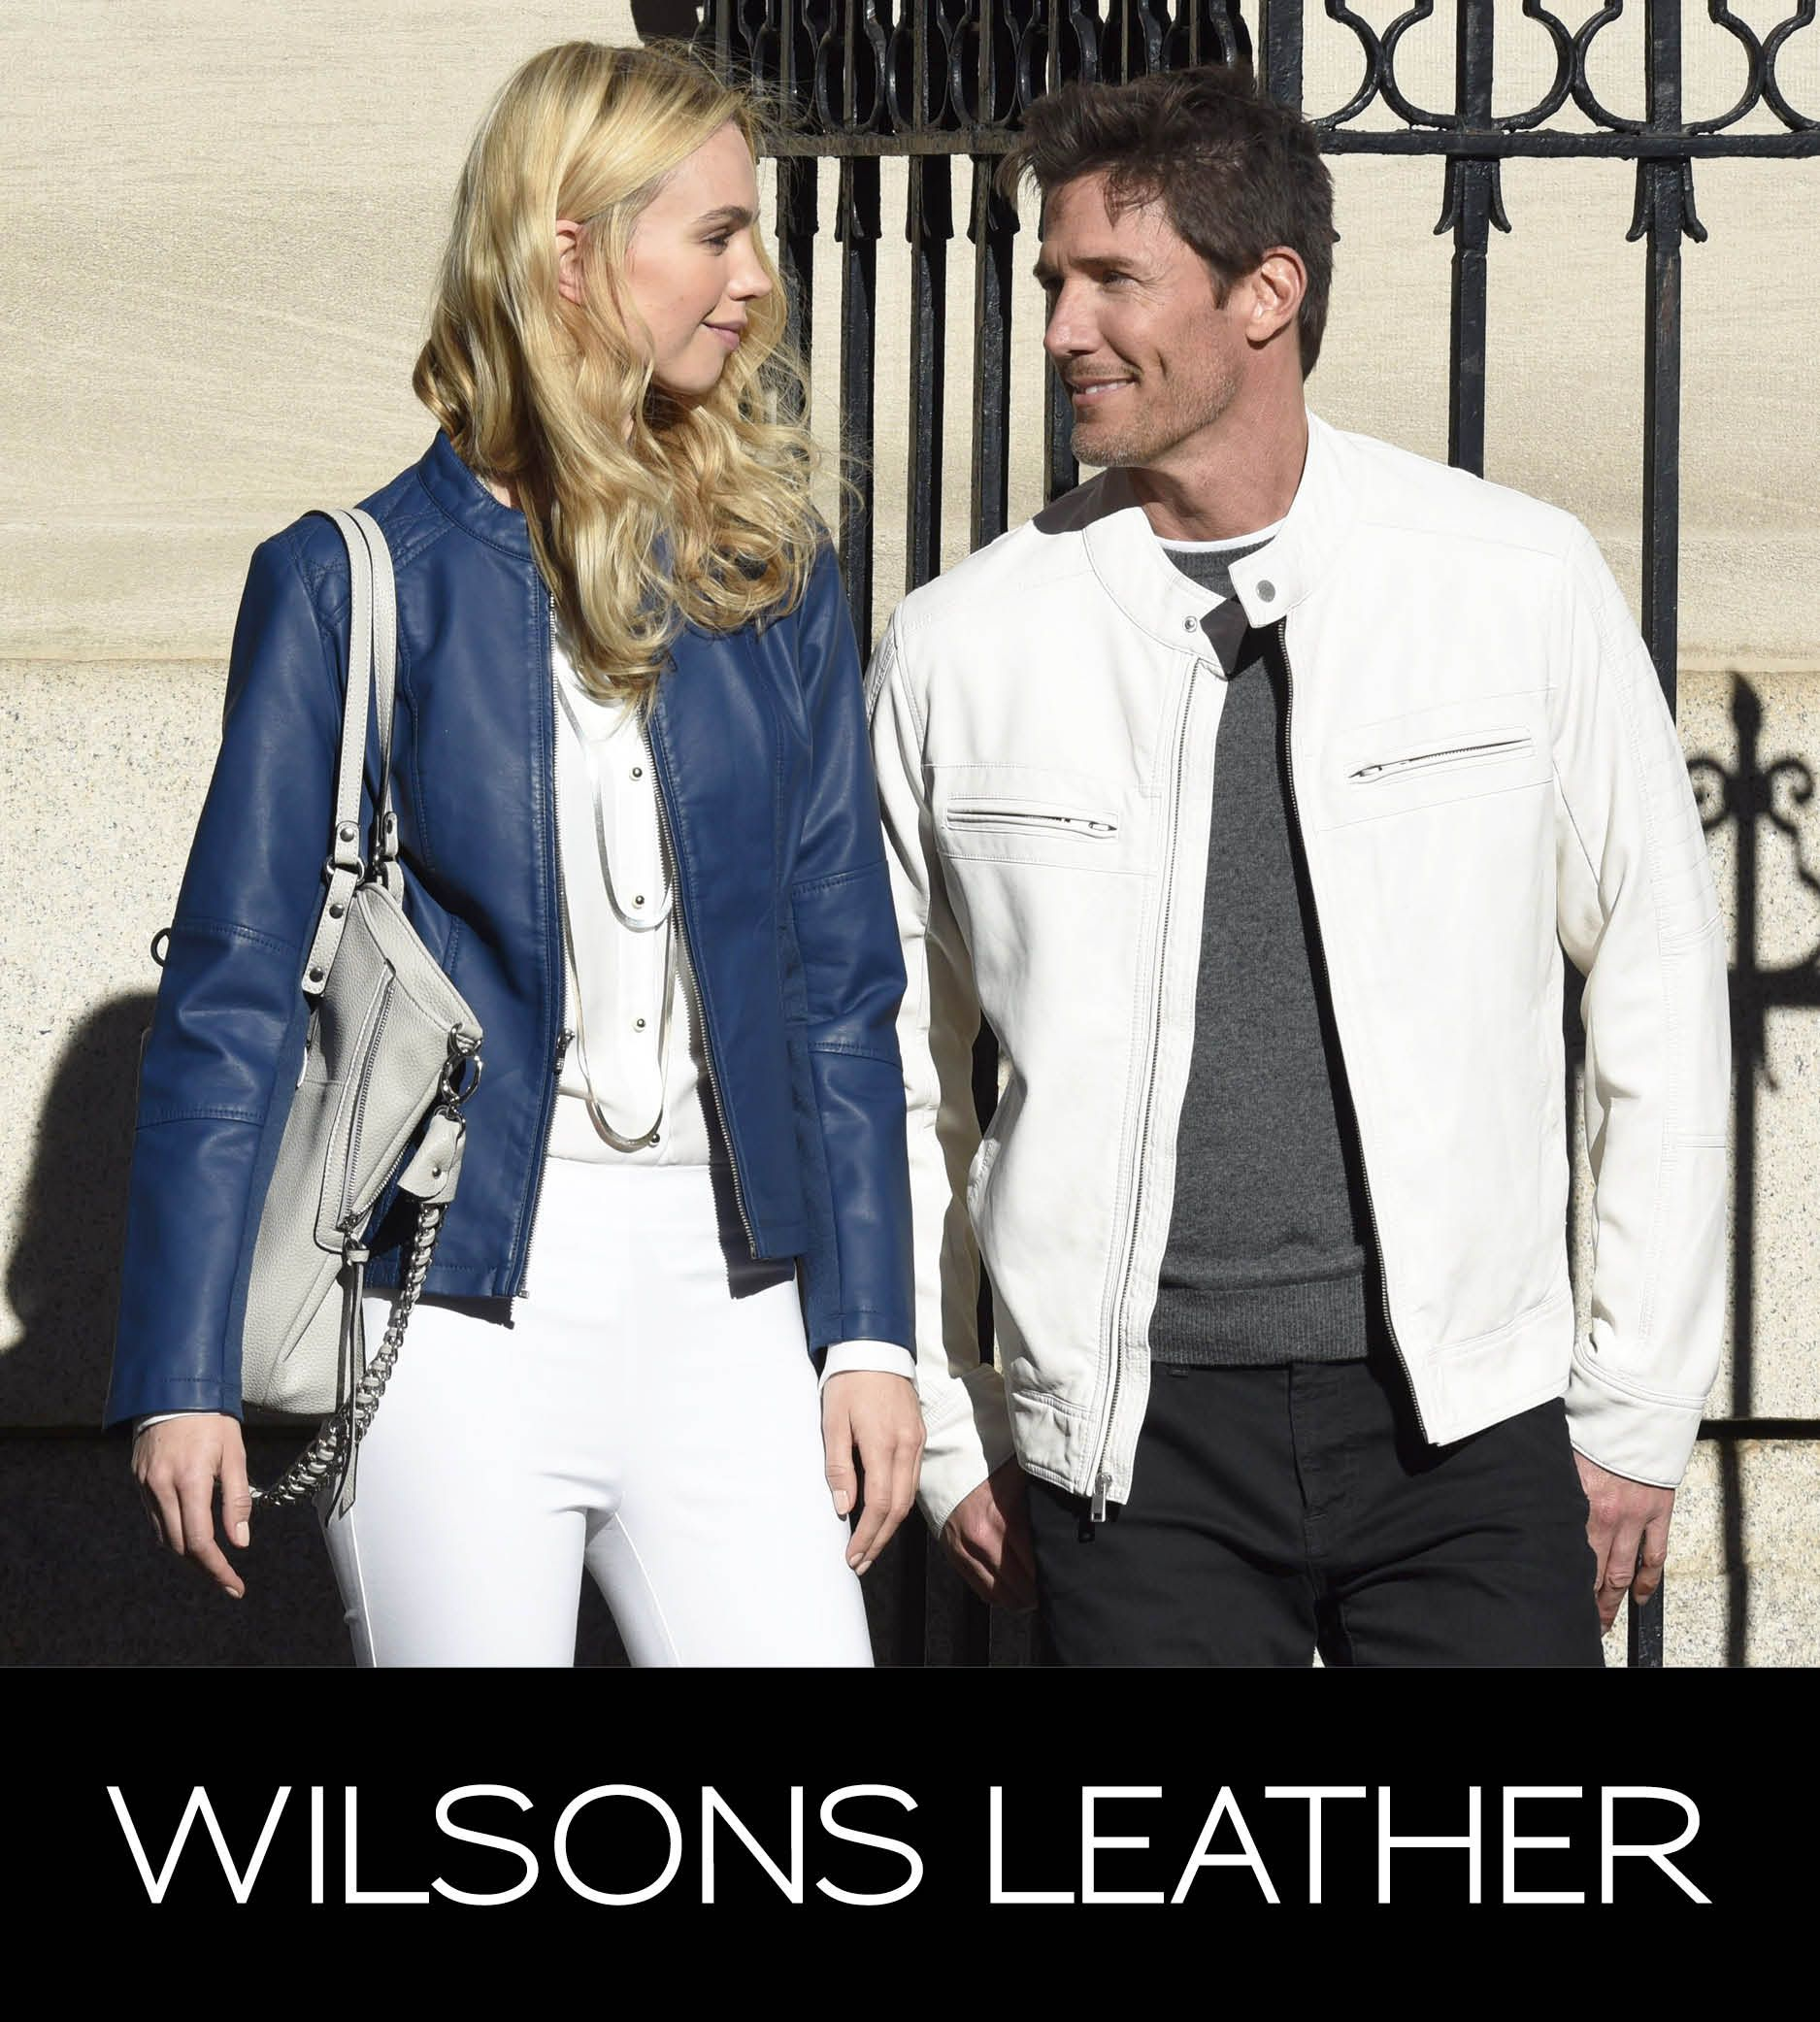 Wilsons Leather Easter Weekend Sale! Extra 50 Off Valid